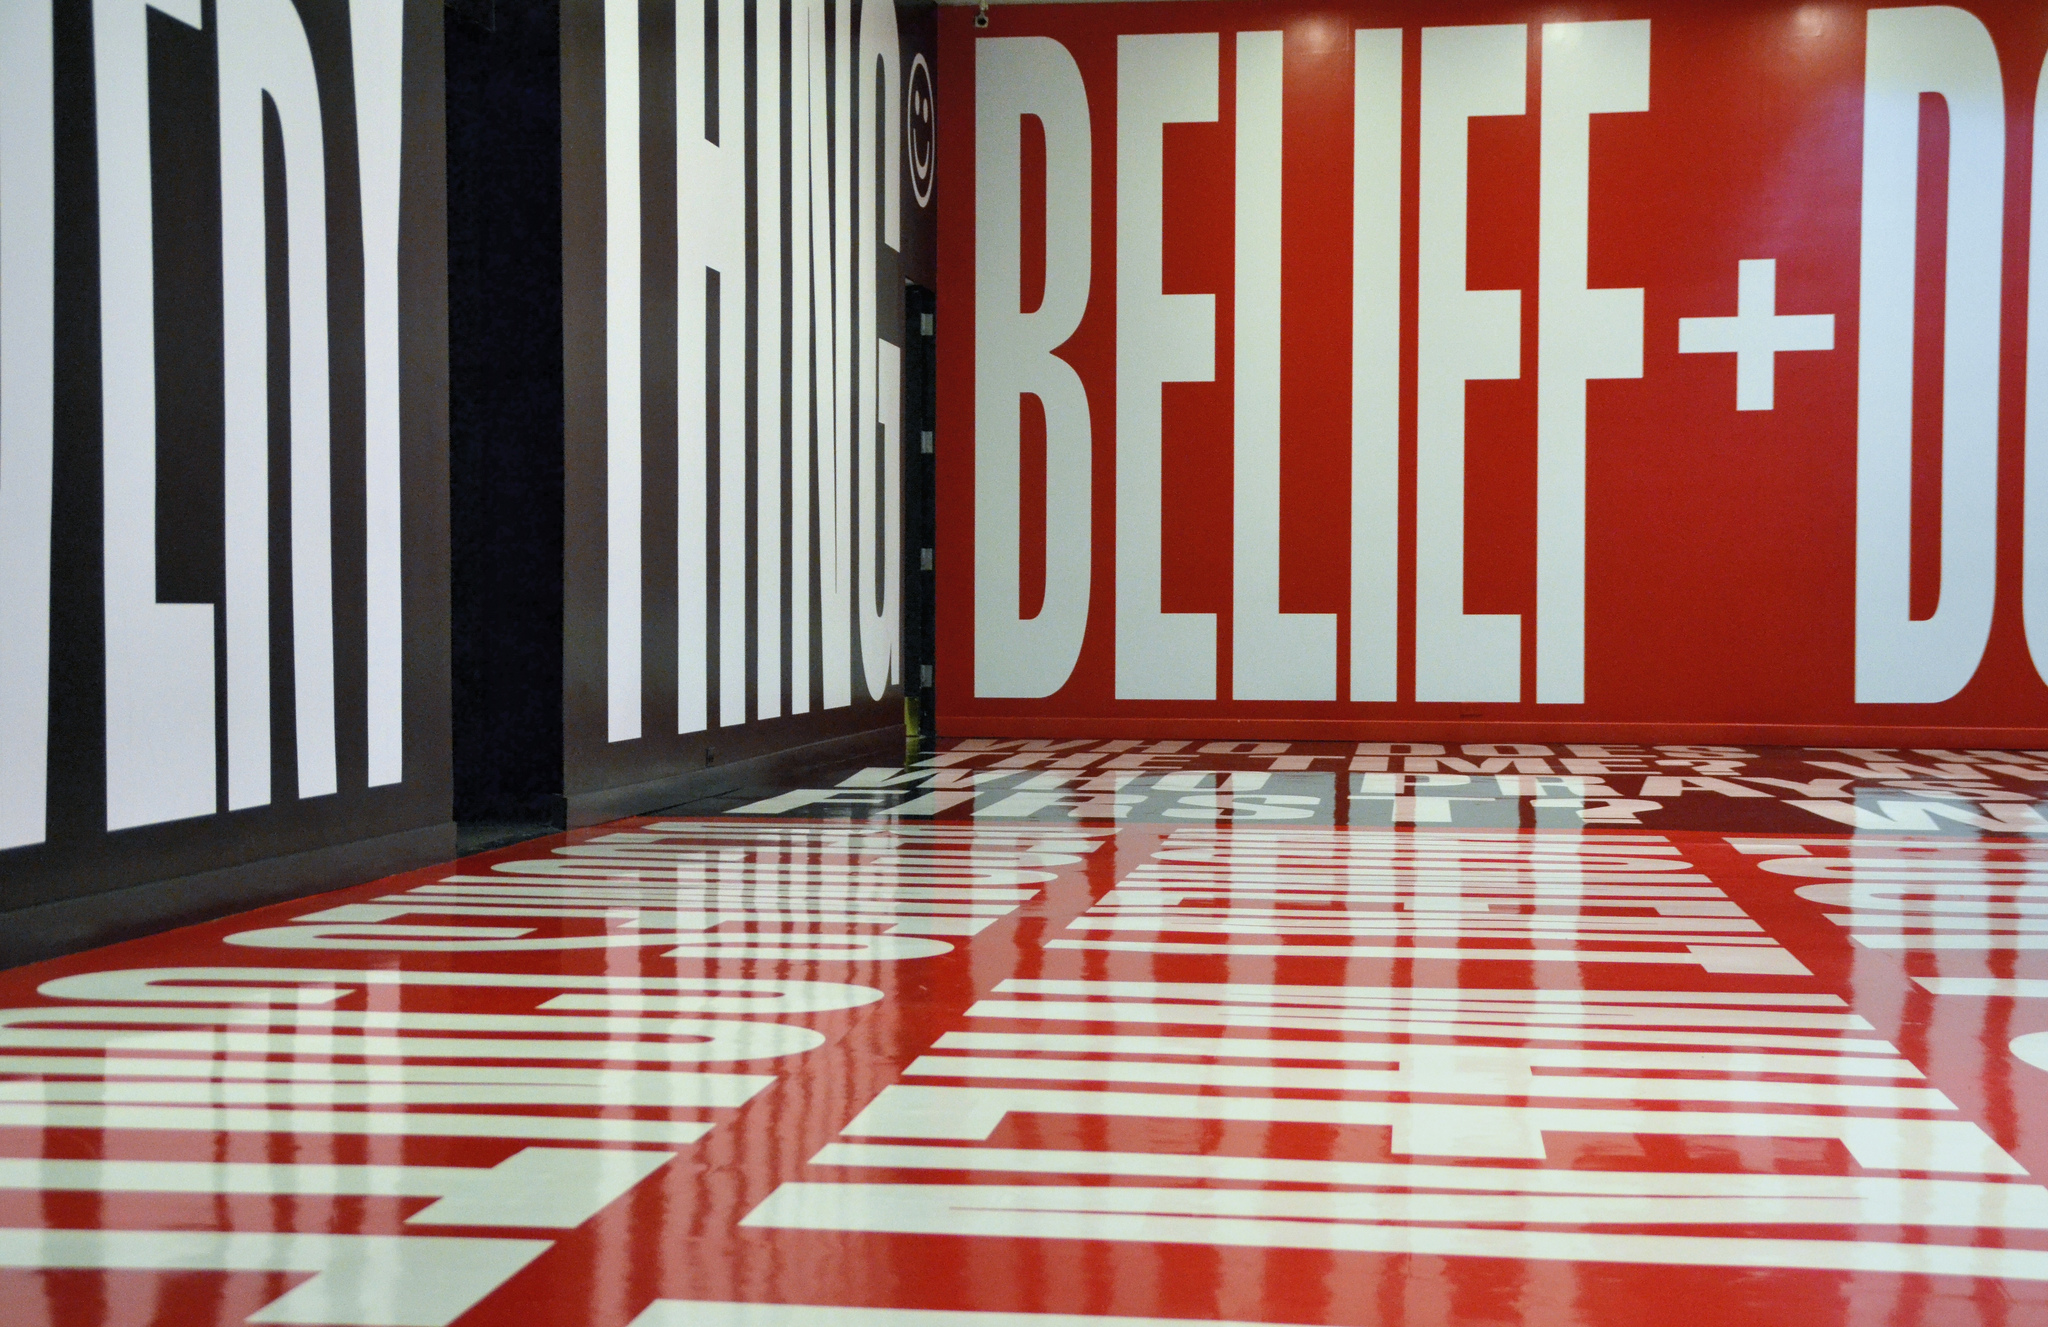 Self-belief is the key to success - if you think you can, you might. If you don't think you can, you won't (Picture: Flickr//jpellgen)